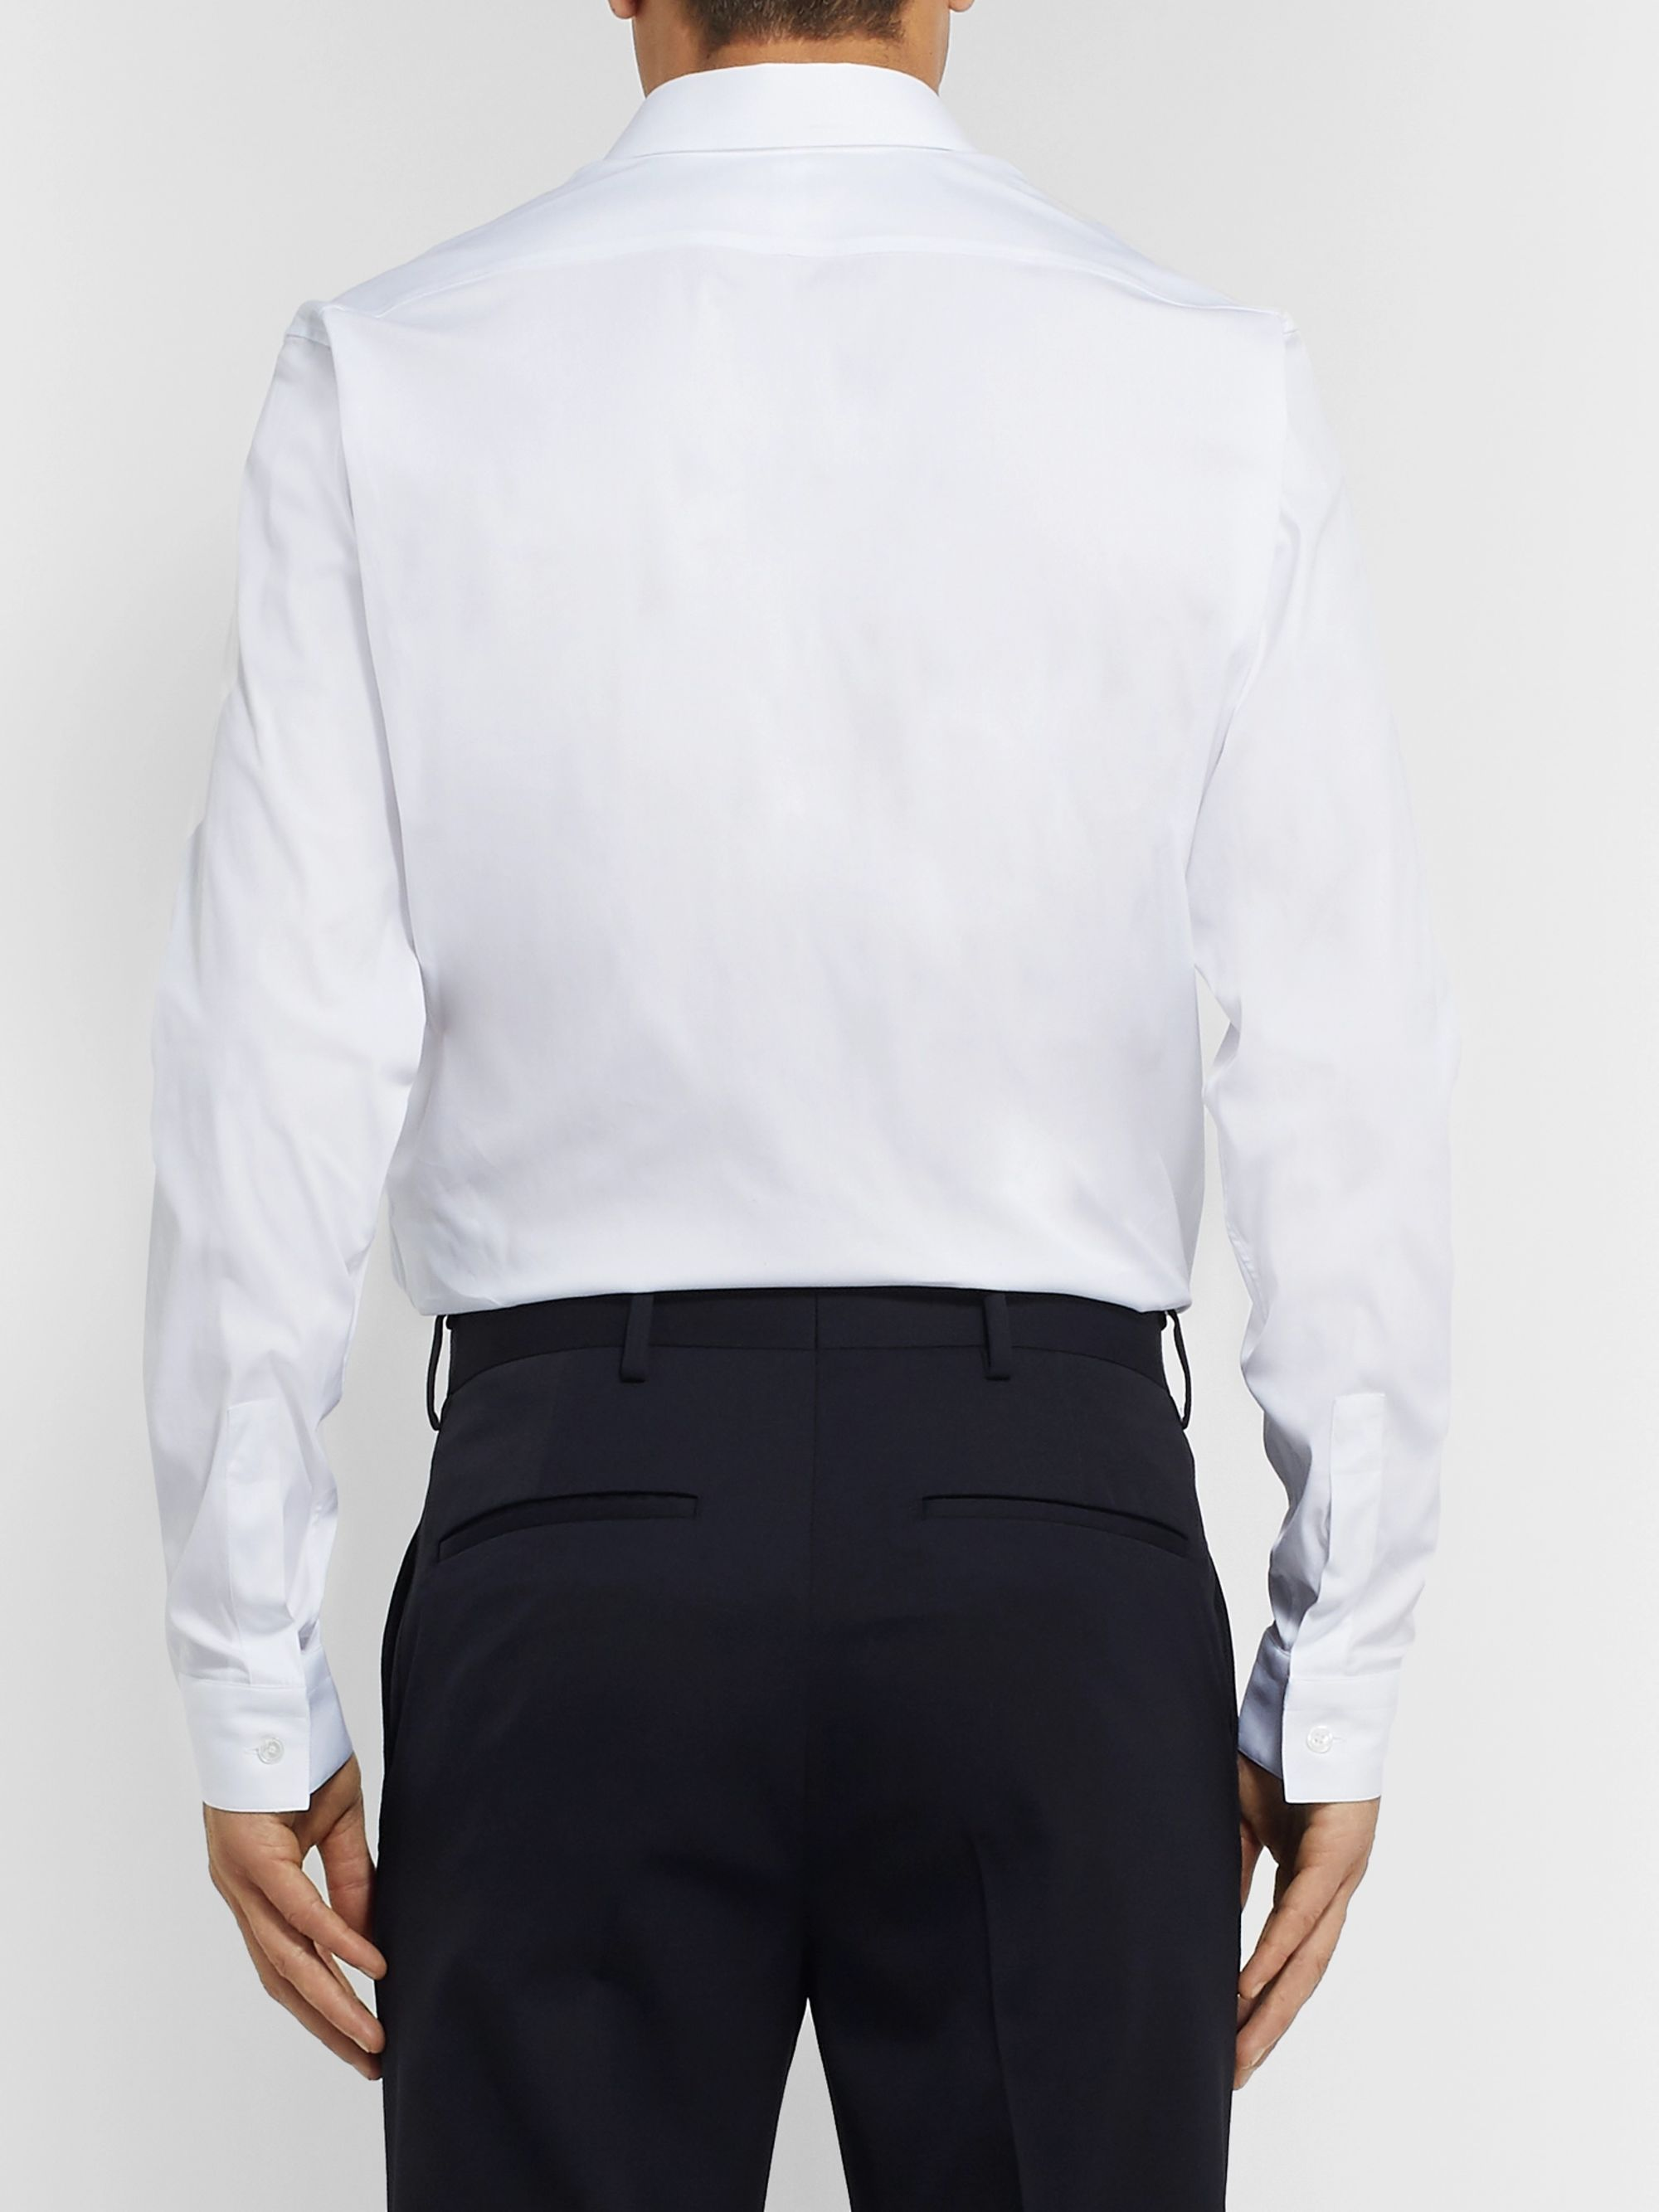 Berluti White Slim-Fit Cotton-Blend Poplin Shirt